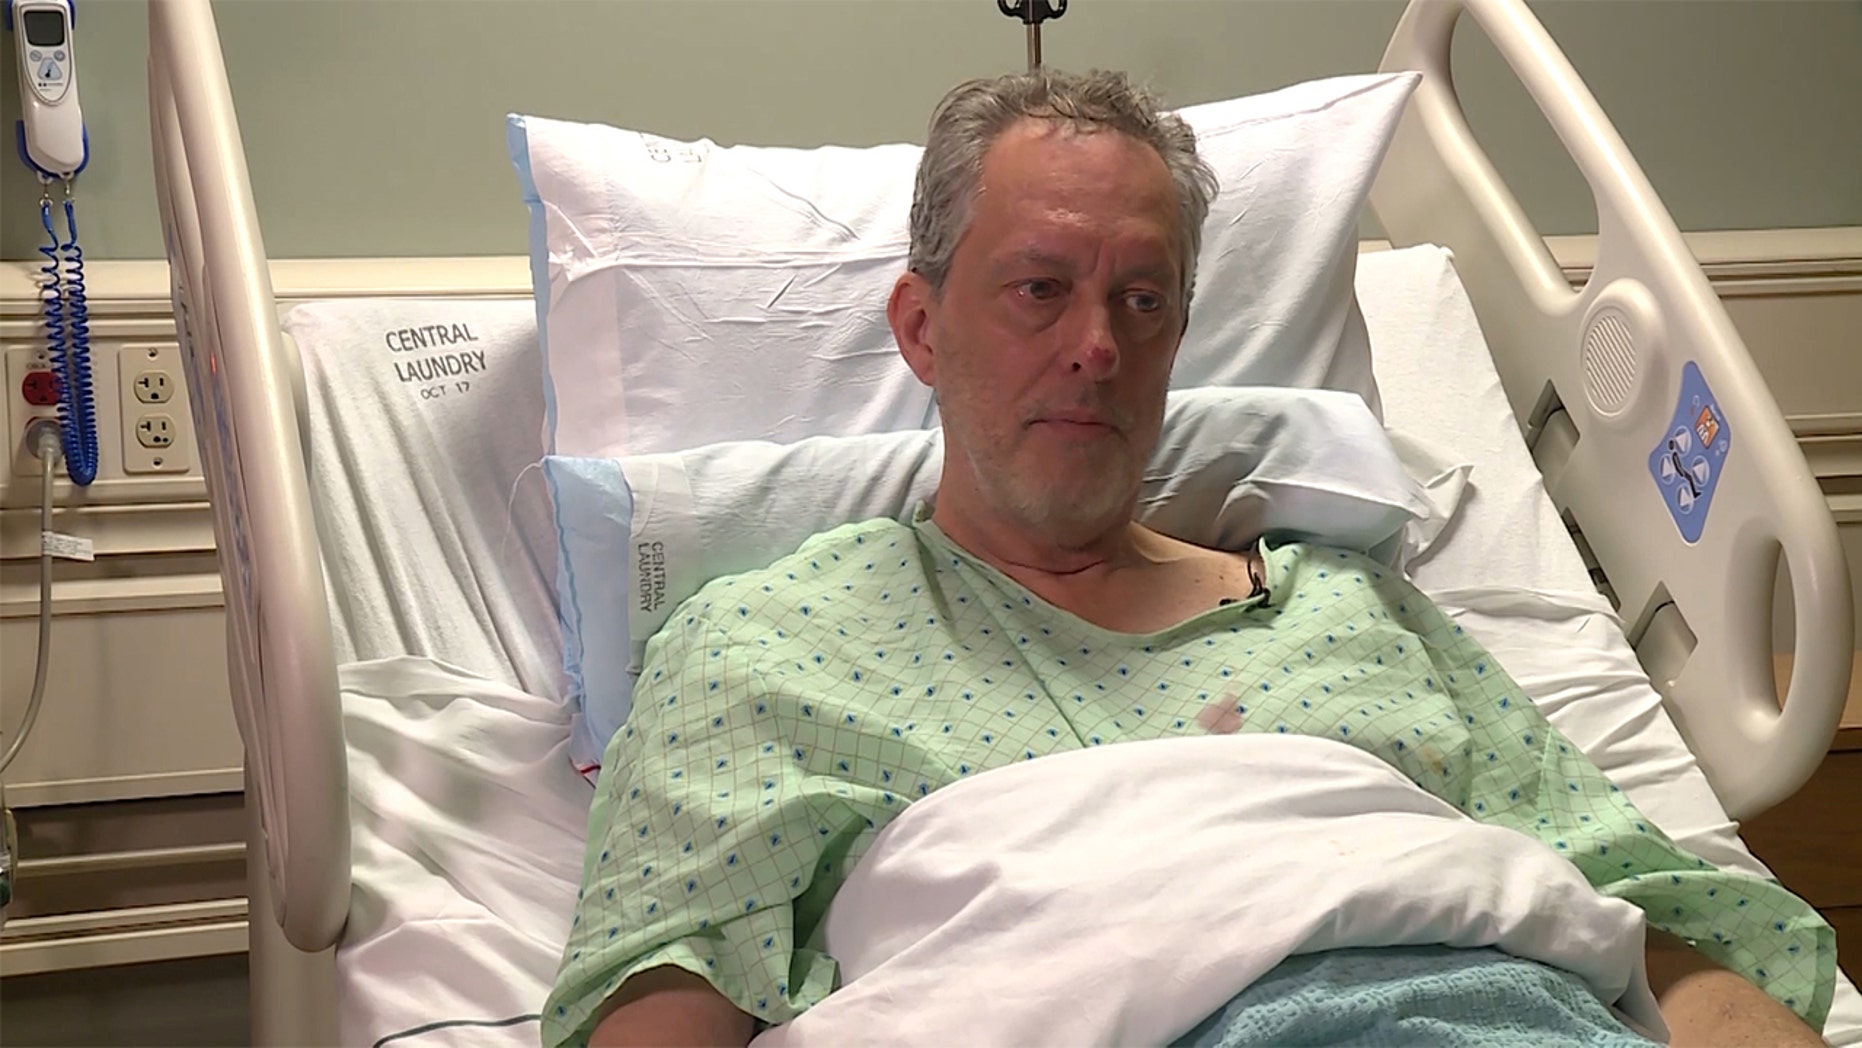 David Hales reflects on his ordeal from a hospital bed in Heber City, Utah. Hales, a snowmobiler who spent four nights alone in freezing temperatures in the Utah wilderness without food or water said he didn't think he would survive. Hales said that he trekked about seven miles on his hands and knees before he was rescued.